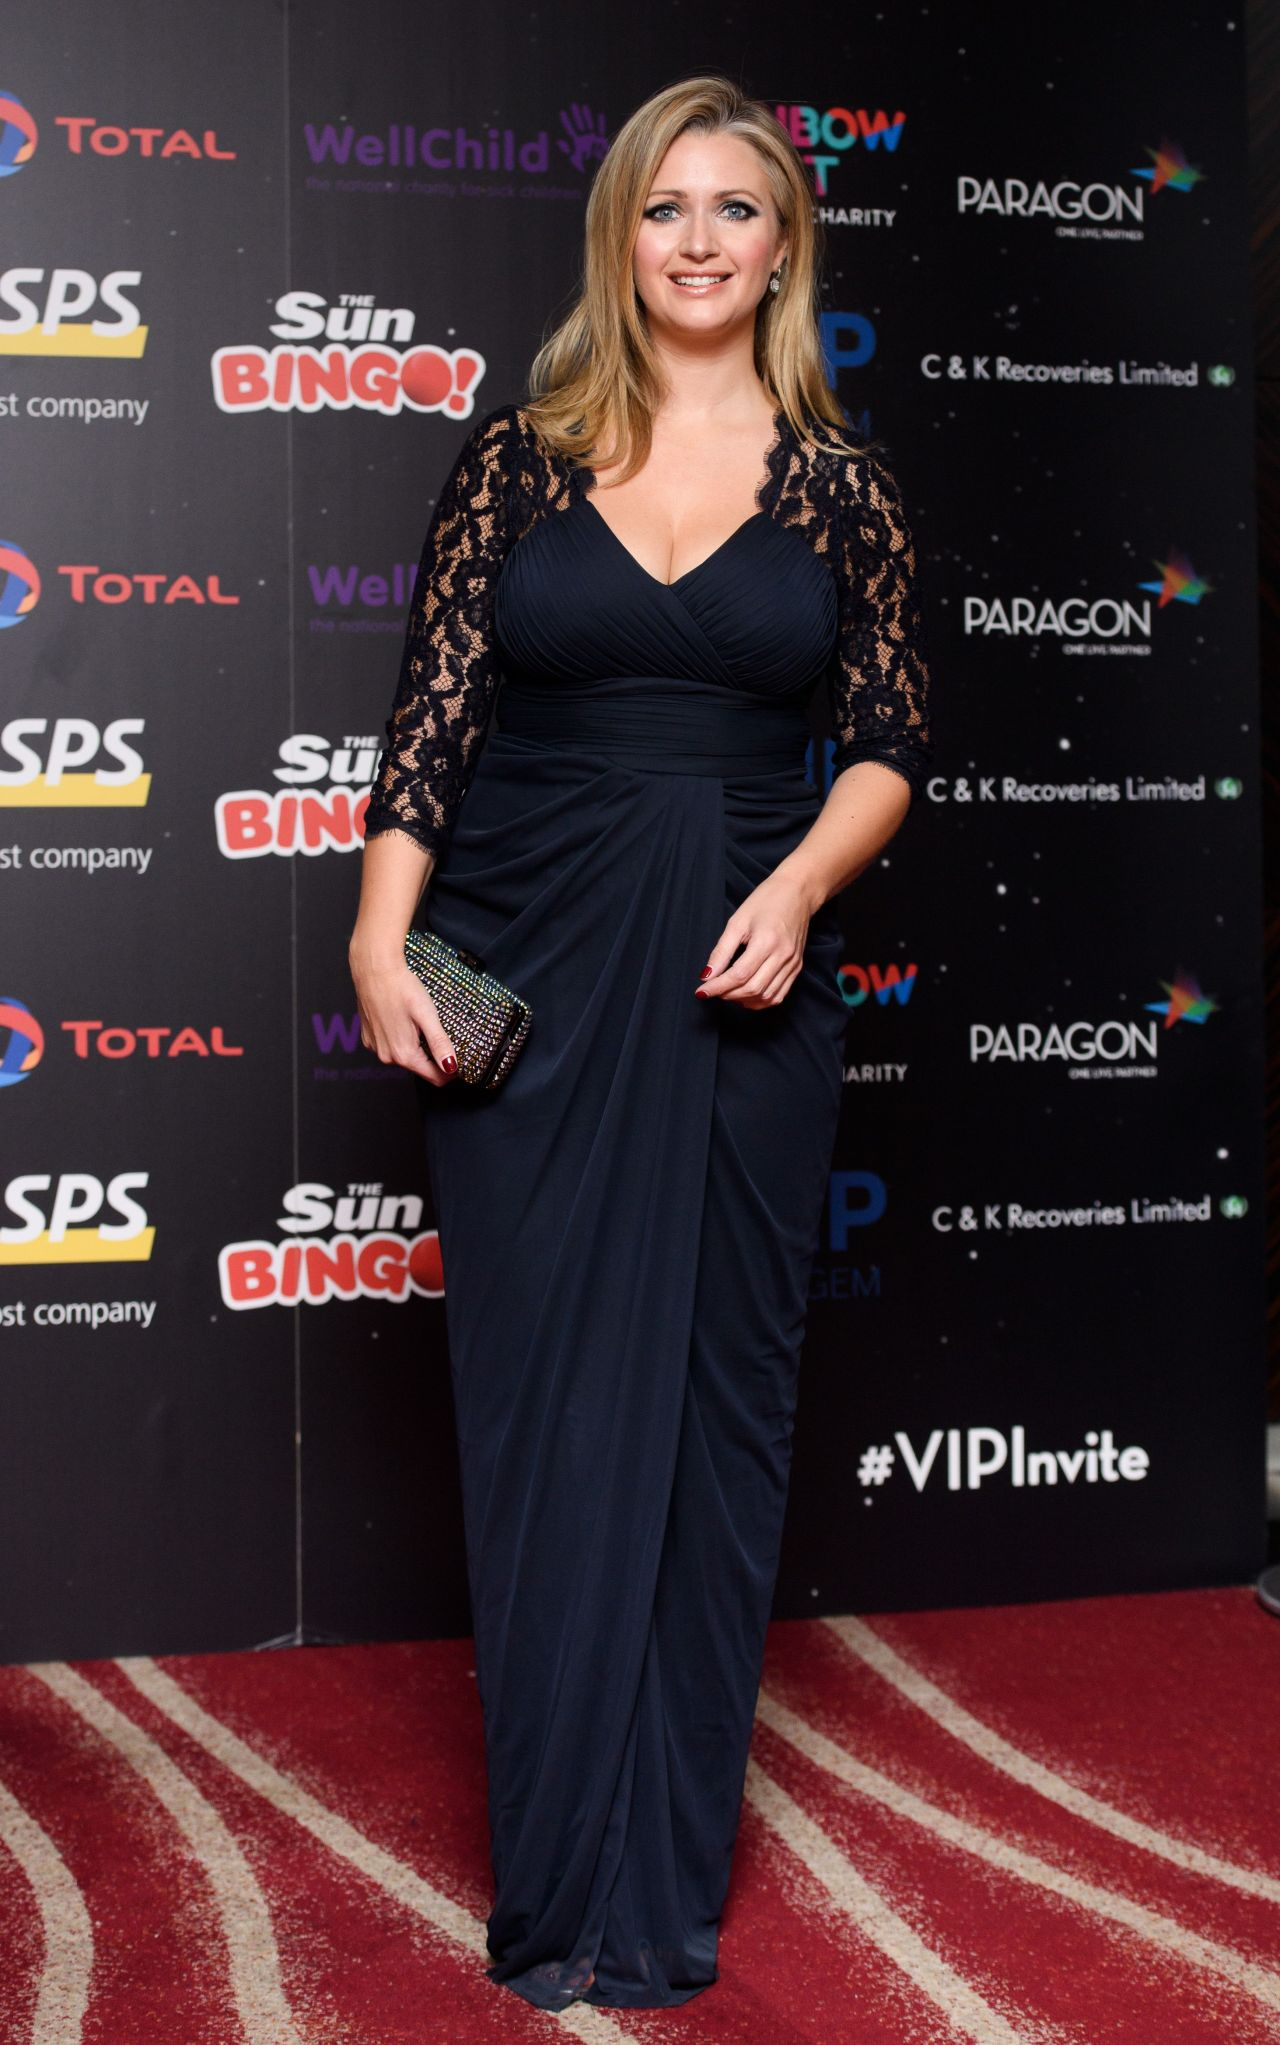 Hayley McQueen - An Evening With Stars in London 11/08/2017